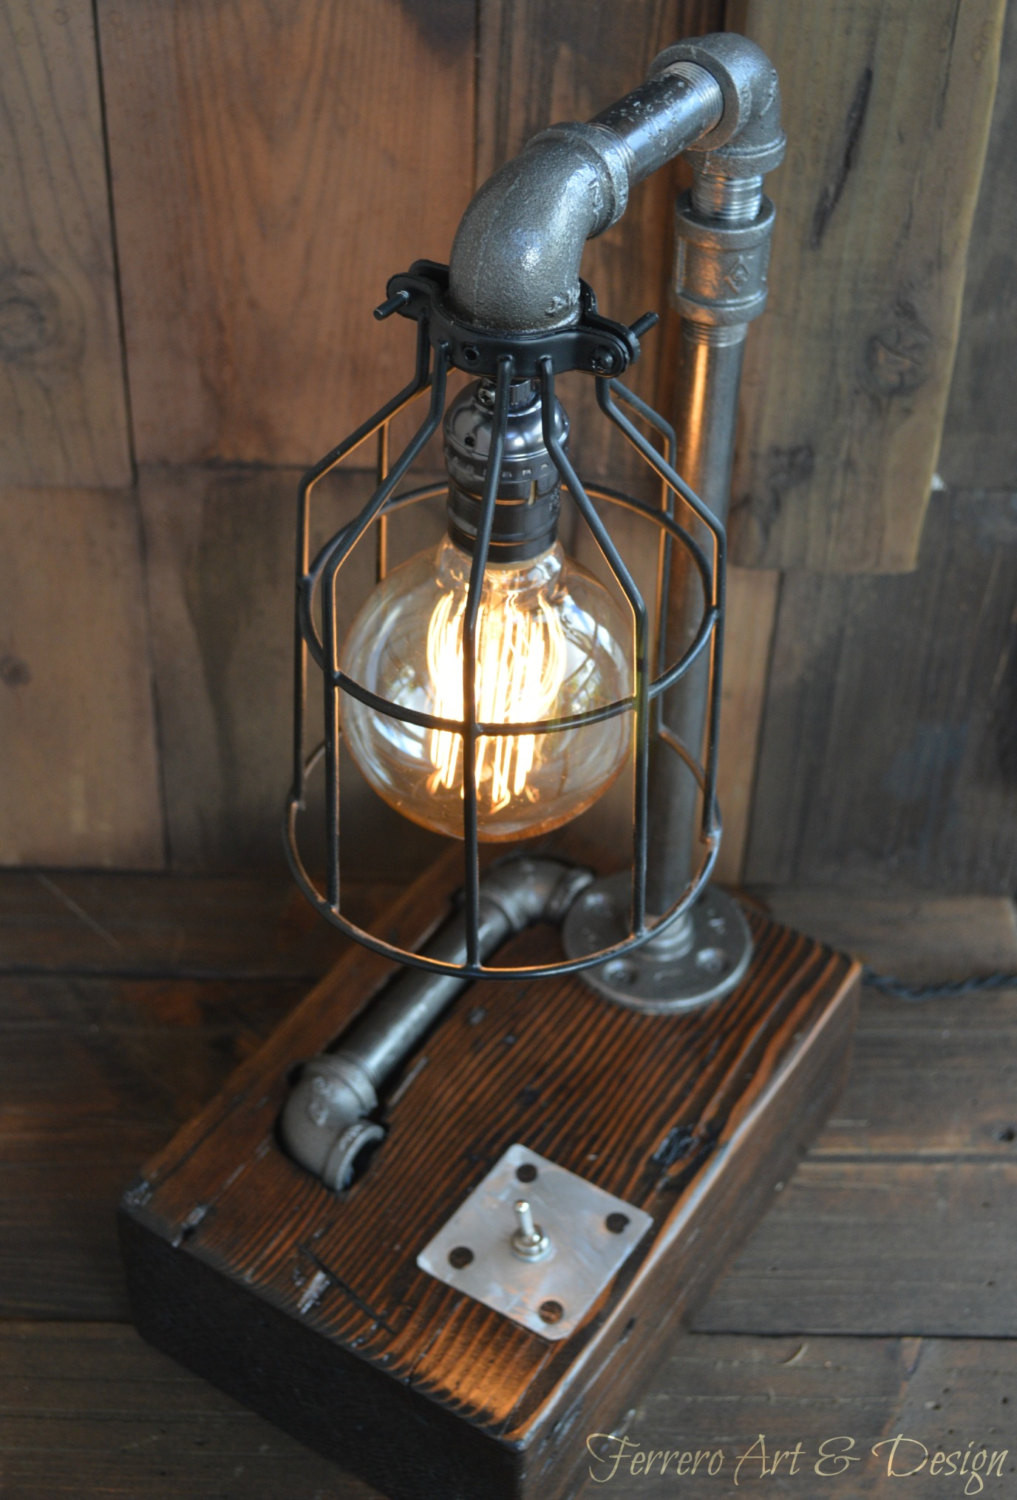 Best ideas about Steampunk Desk Lamp . Save or Pin Steampunk Desk Lamp Steampunk Decor Desk Lamp by Now.